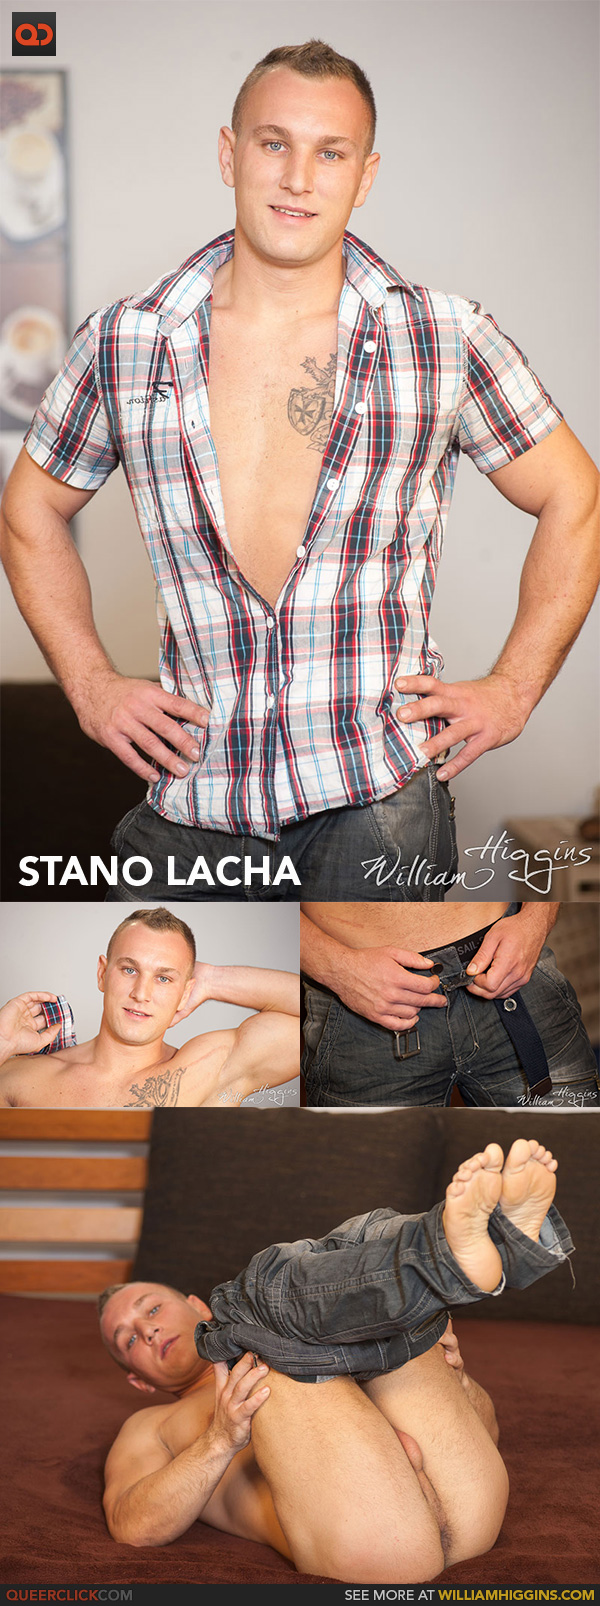 William Higgins: Stano Lacha